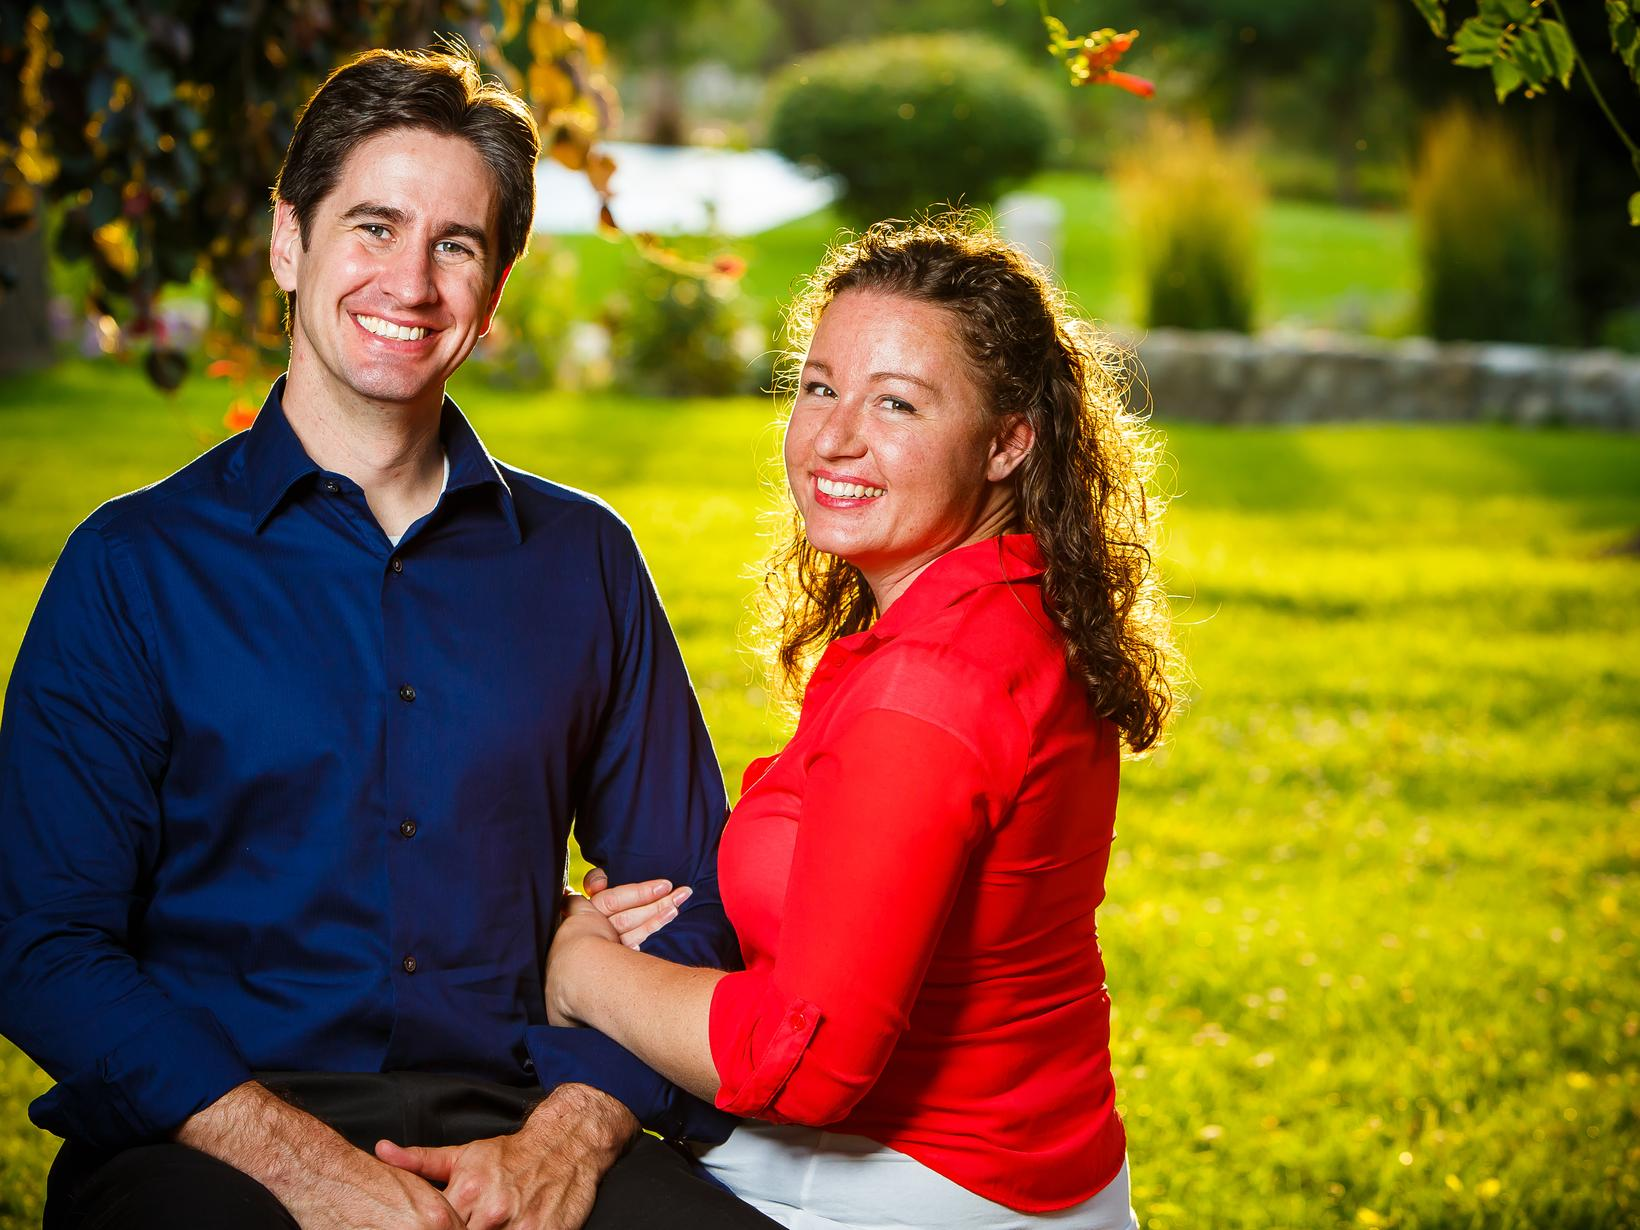 Camille & Carl from Denver, Colorado, United States